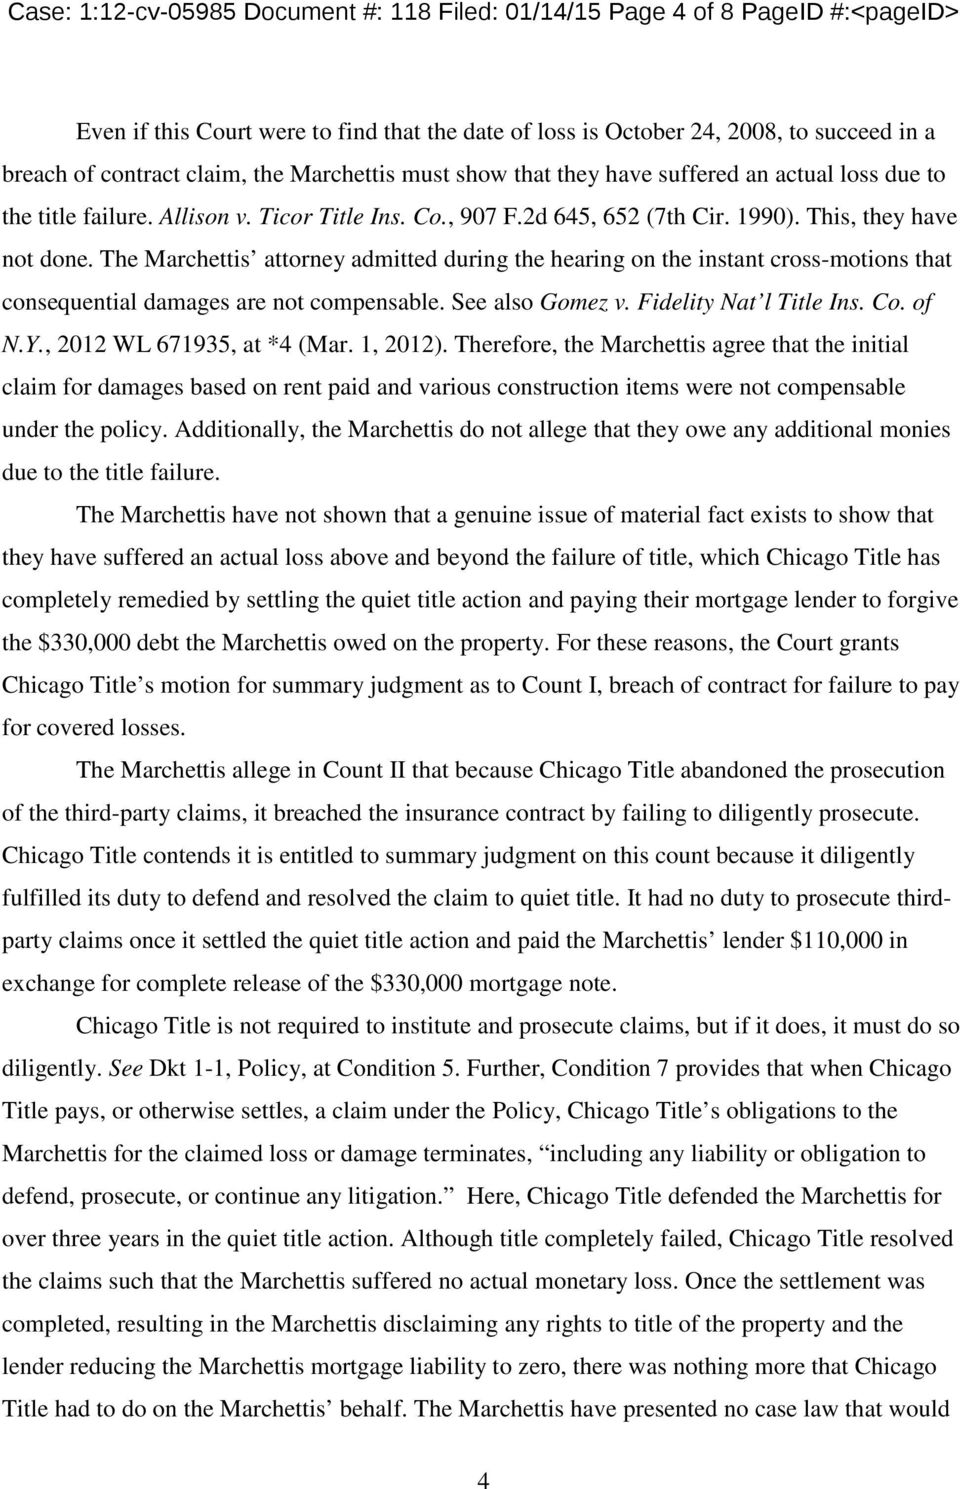 The Marchettis attorney admitted during the hearing on the instant cross-motions that consequential damages are not compensable. See also Gomez v. Fidelity Nat l Title Ins. Co. of N.Y.